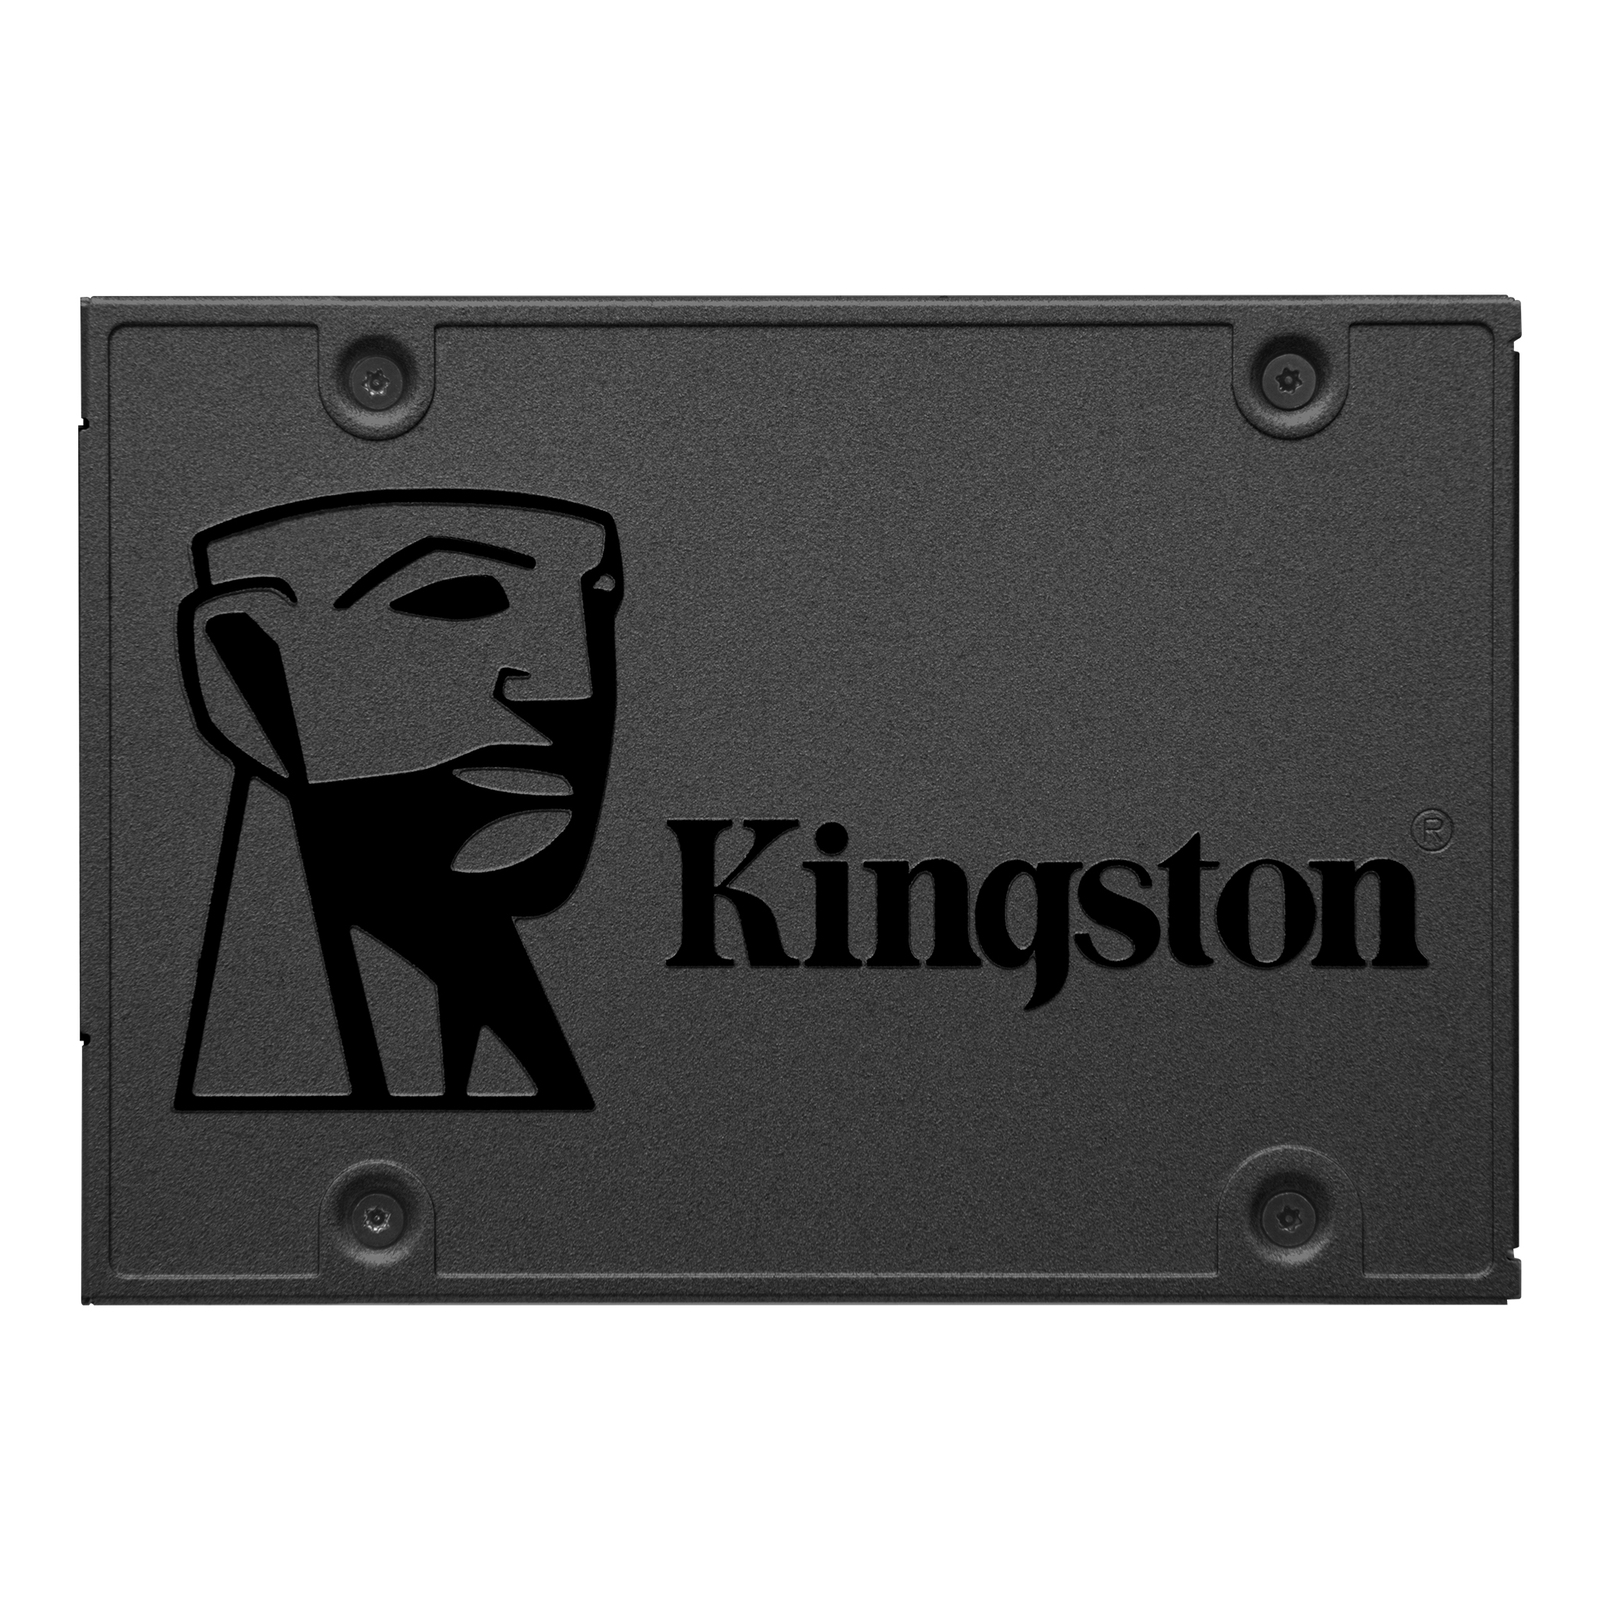 "Primary image for Kingston A400 SSD 120GB 2.5"" Solid State Drive"